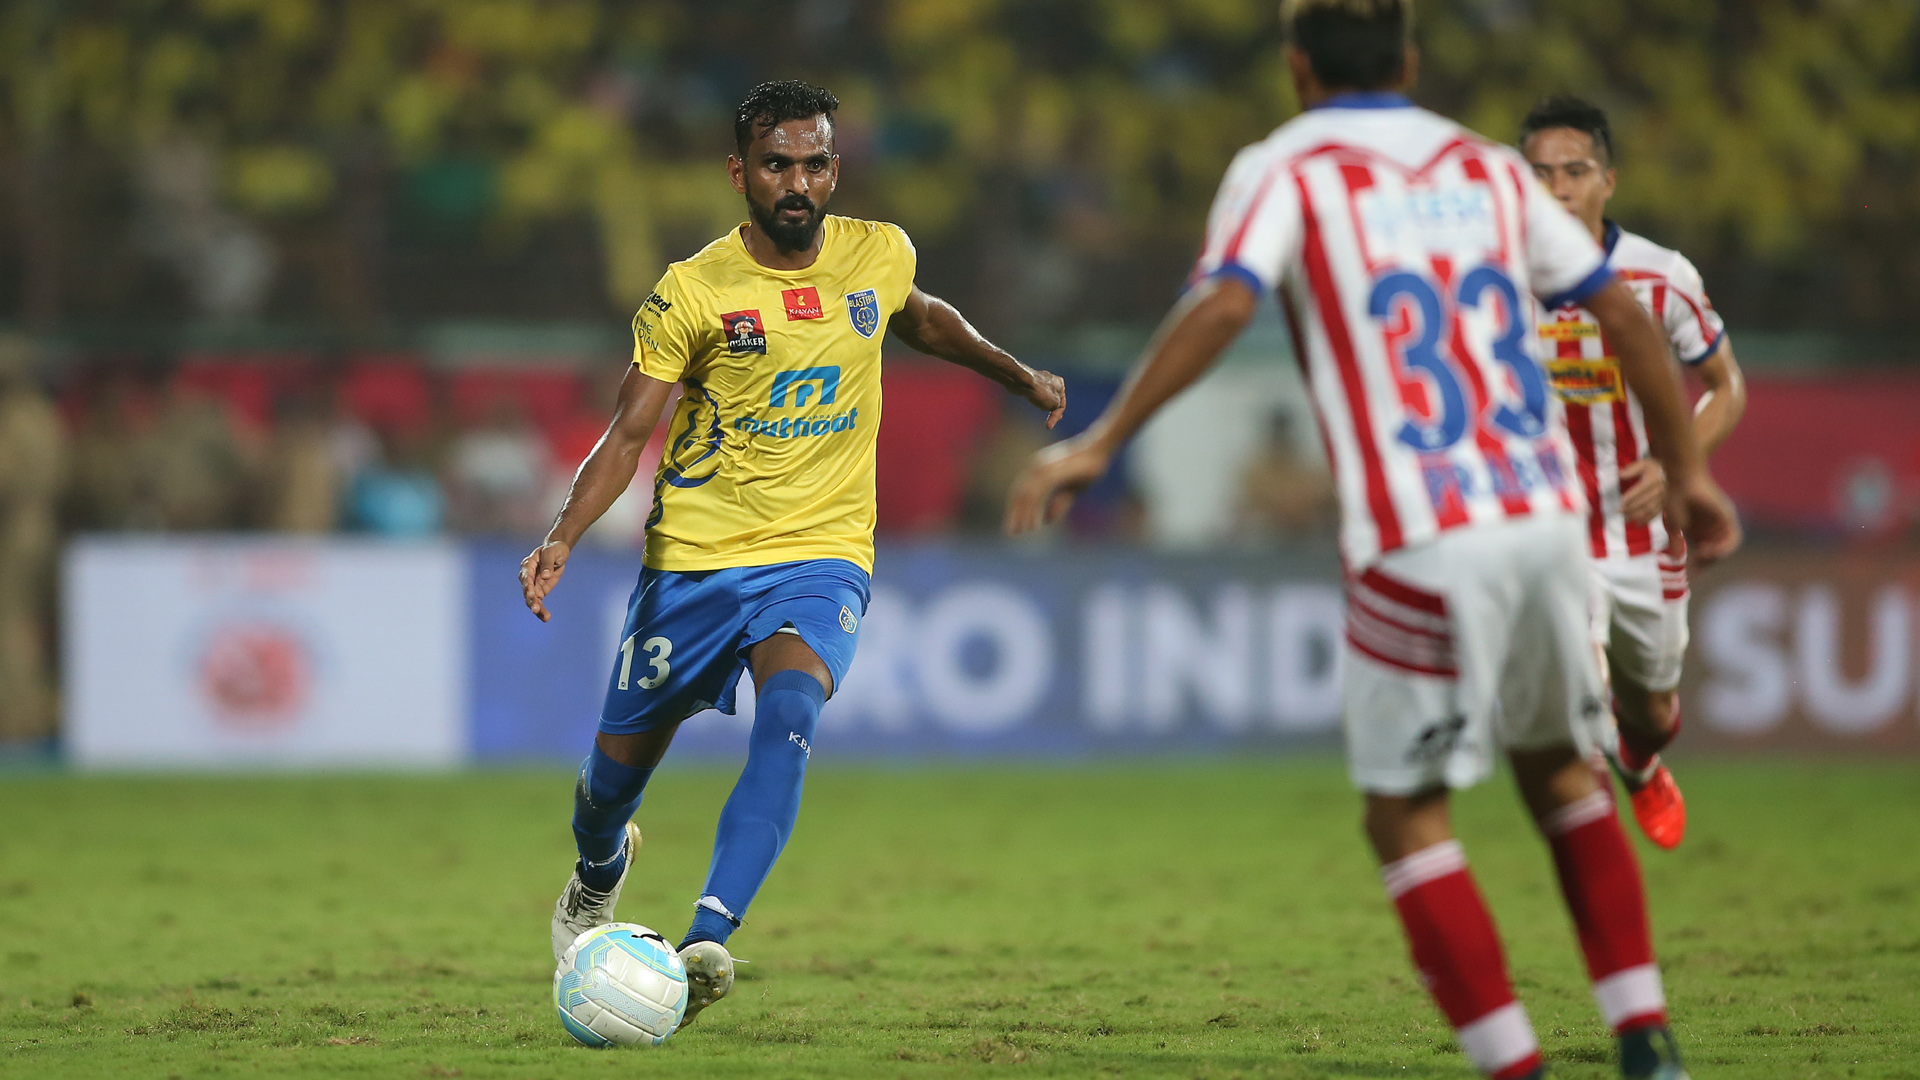 The emergence of C.K. Vineeth has been a positive outcome.